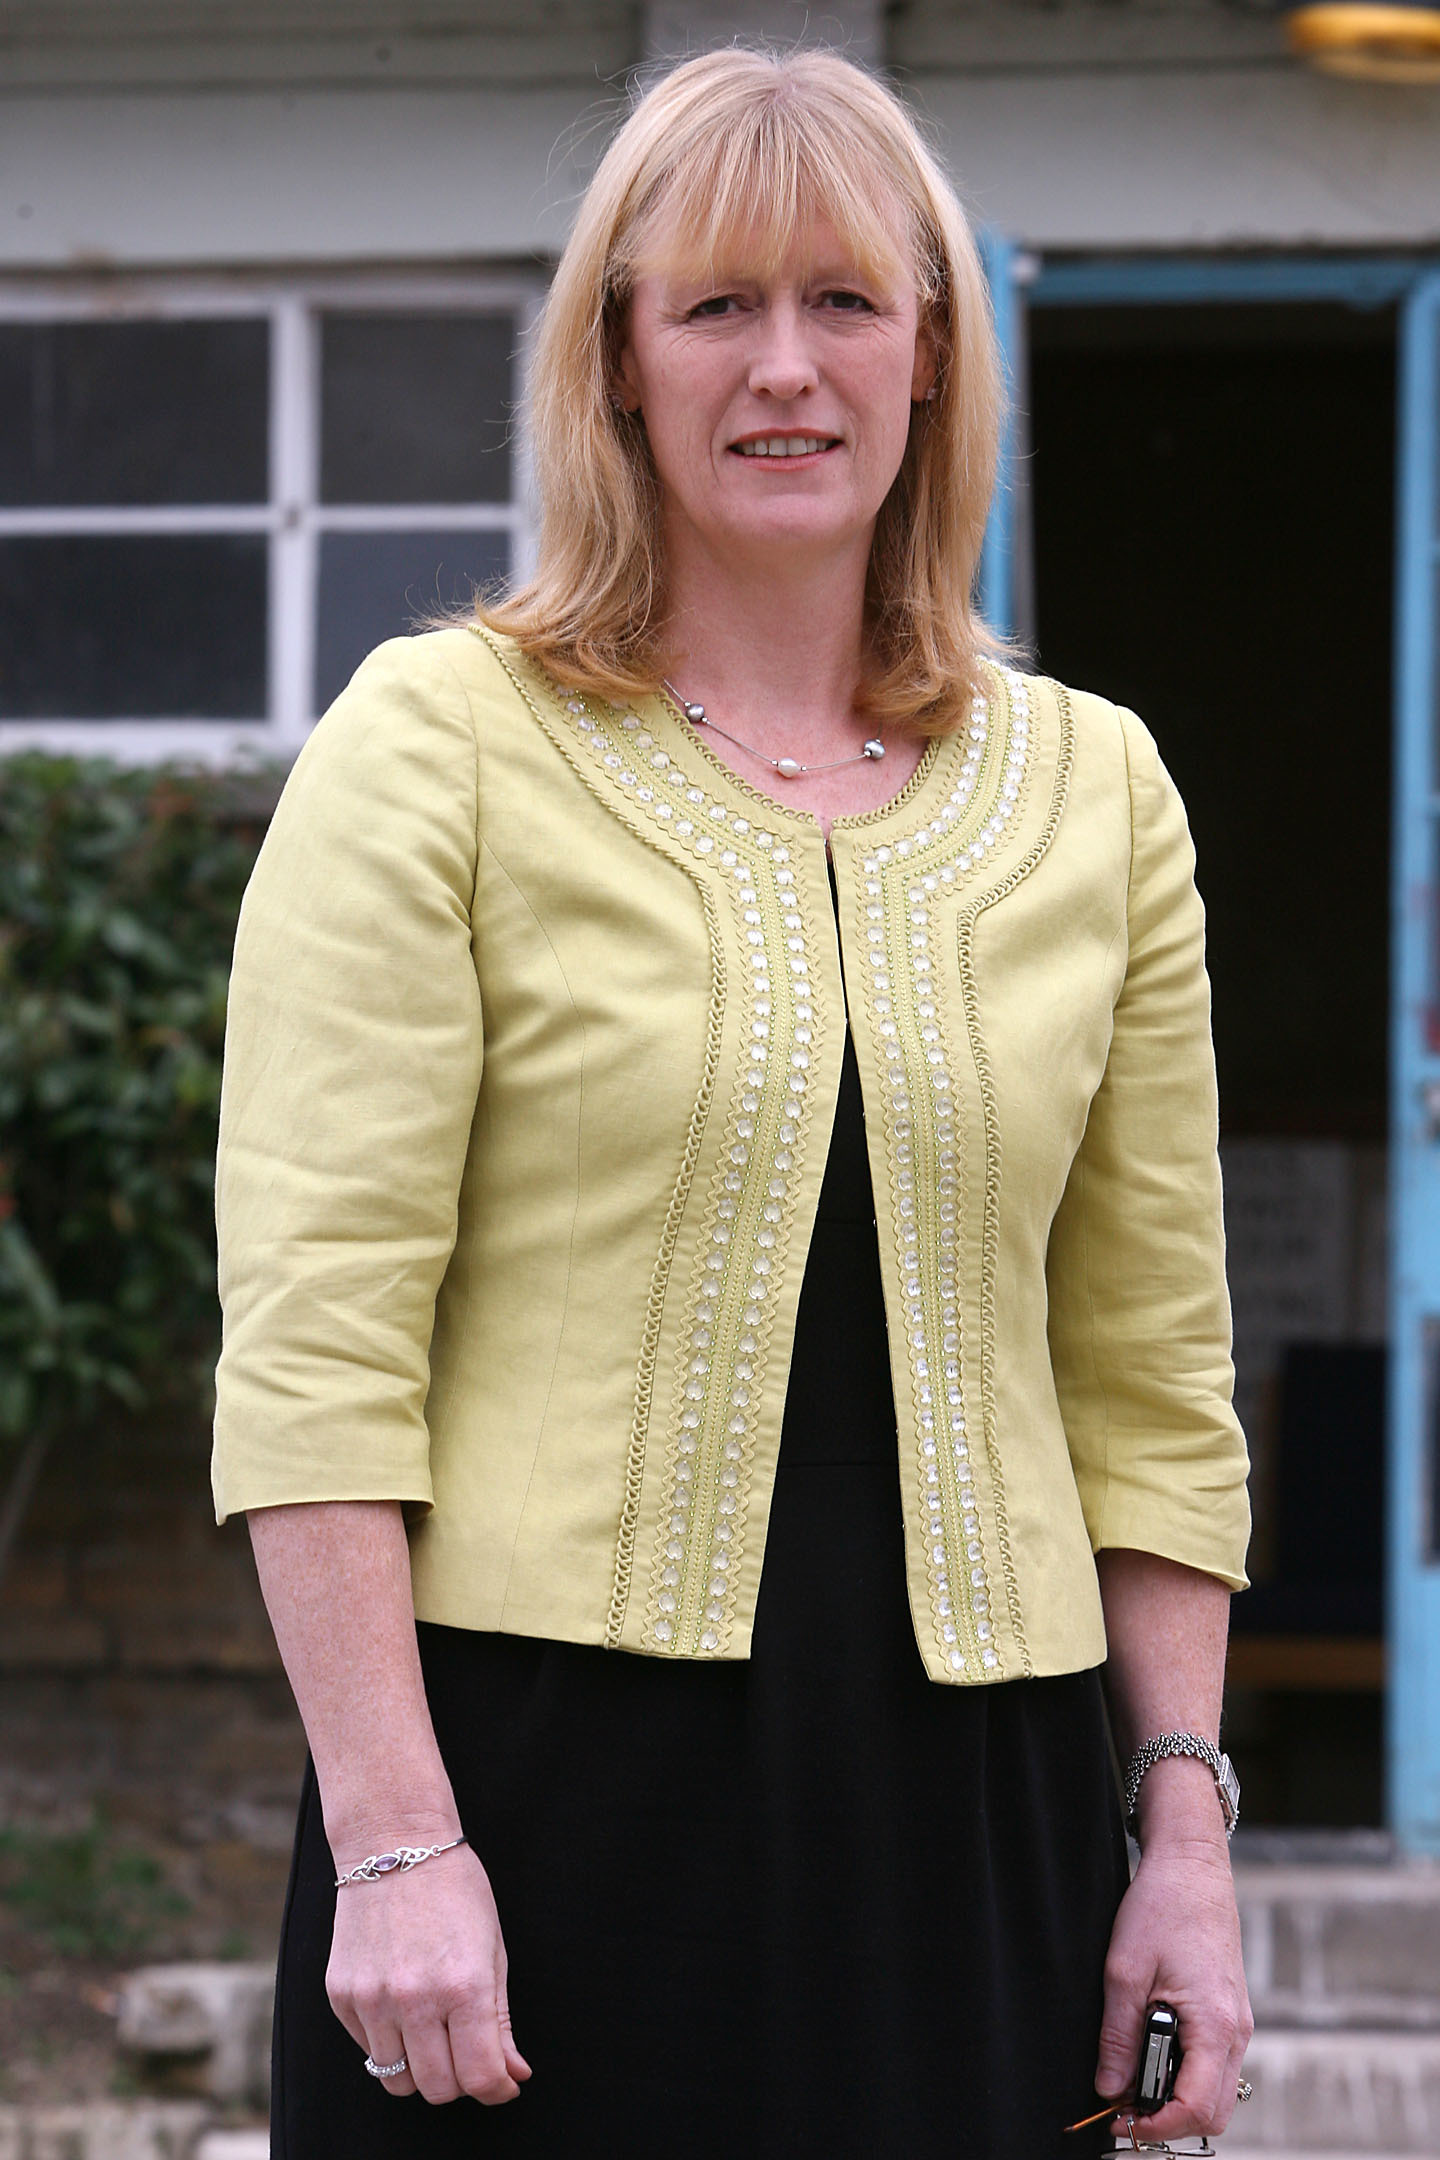 Enfield MP claims no-deal Brexit would affect people in Brimsdown